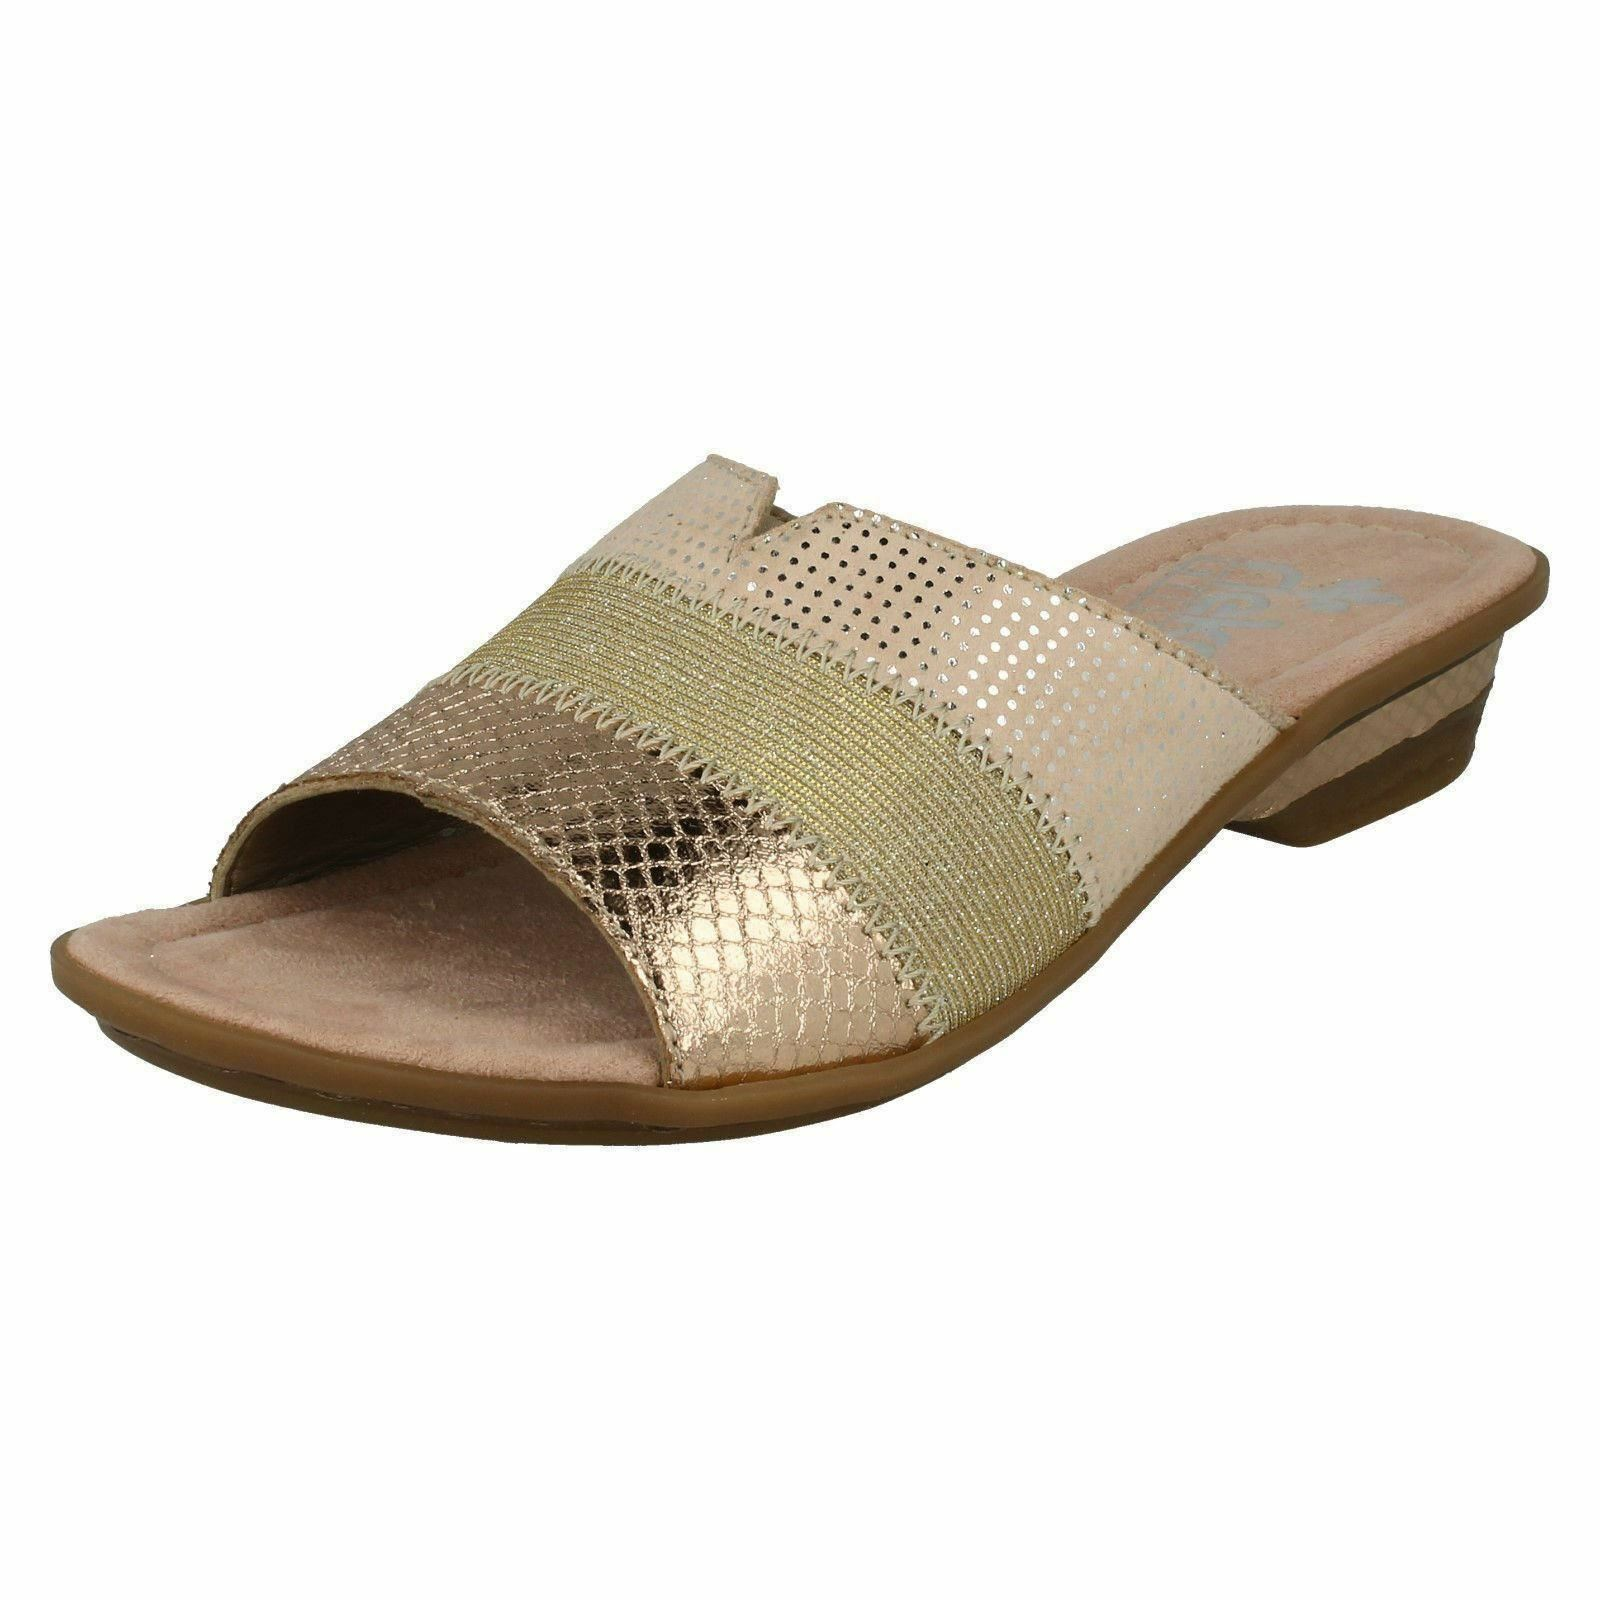 Ladies Beige Combi Slip On Rieker Open Toe Sandals Mules 63425